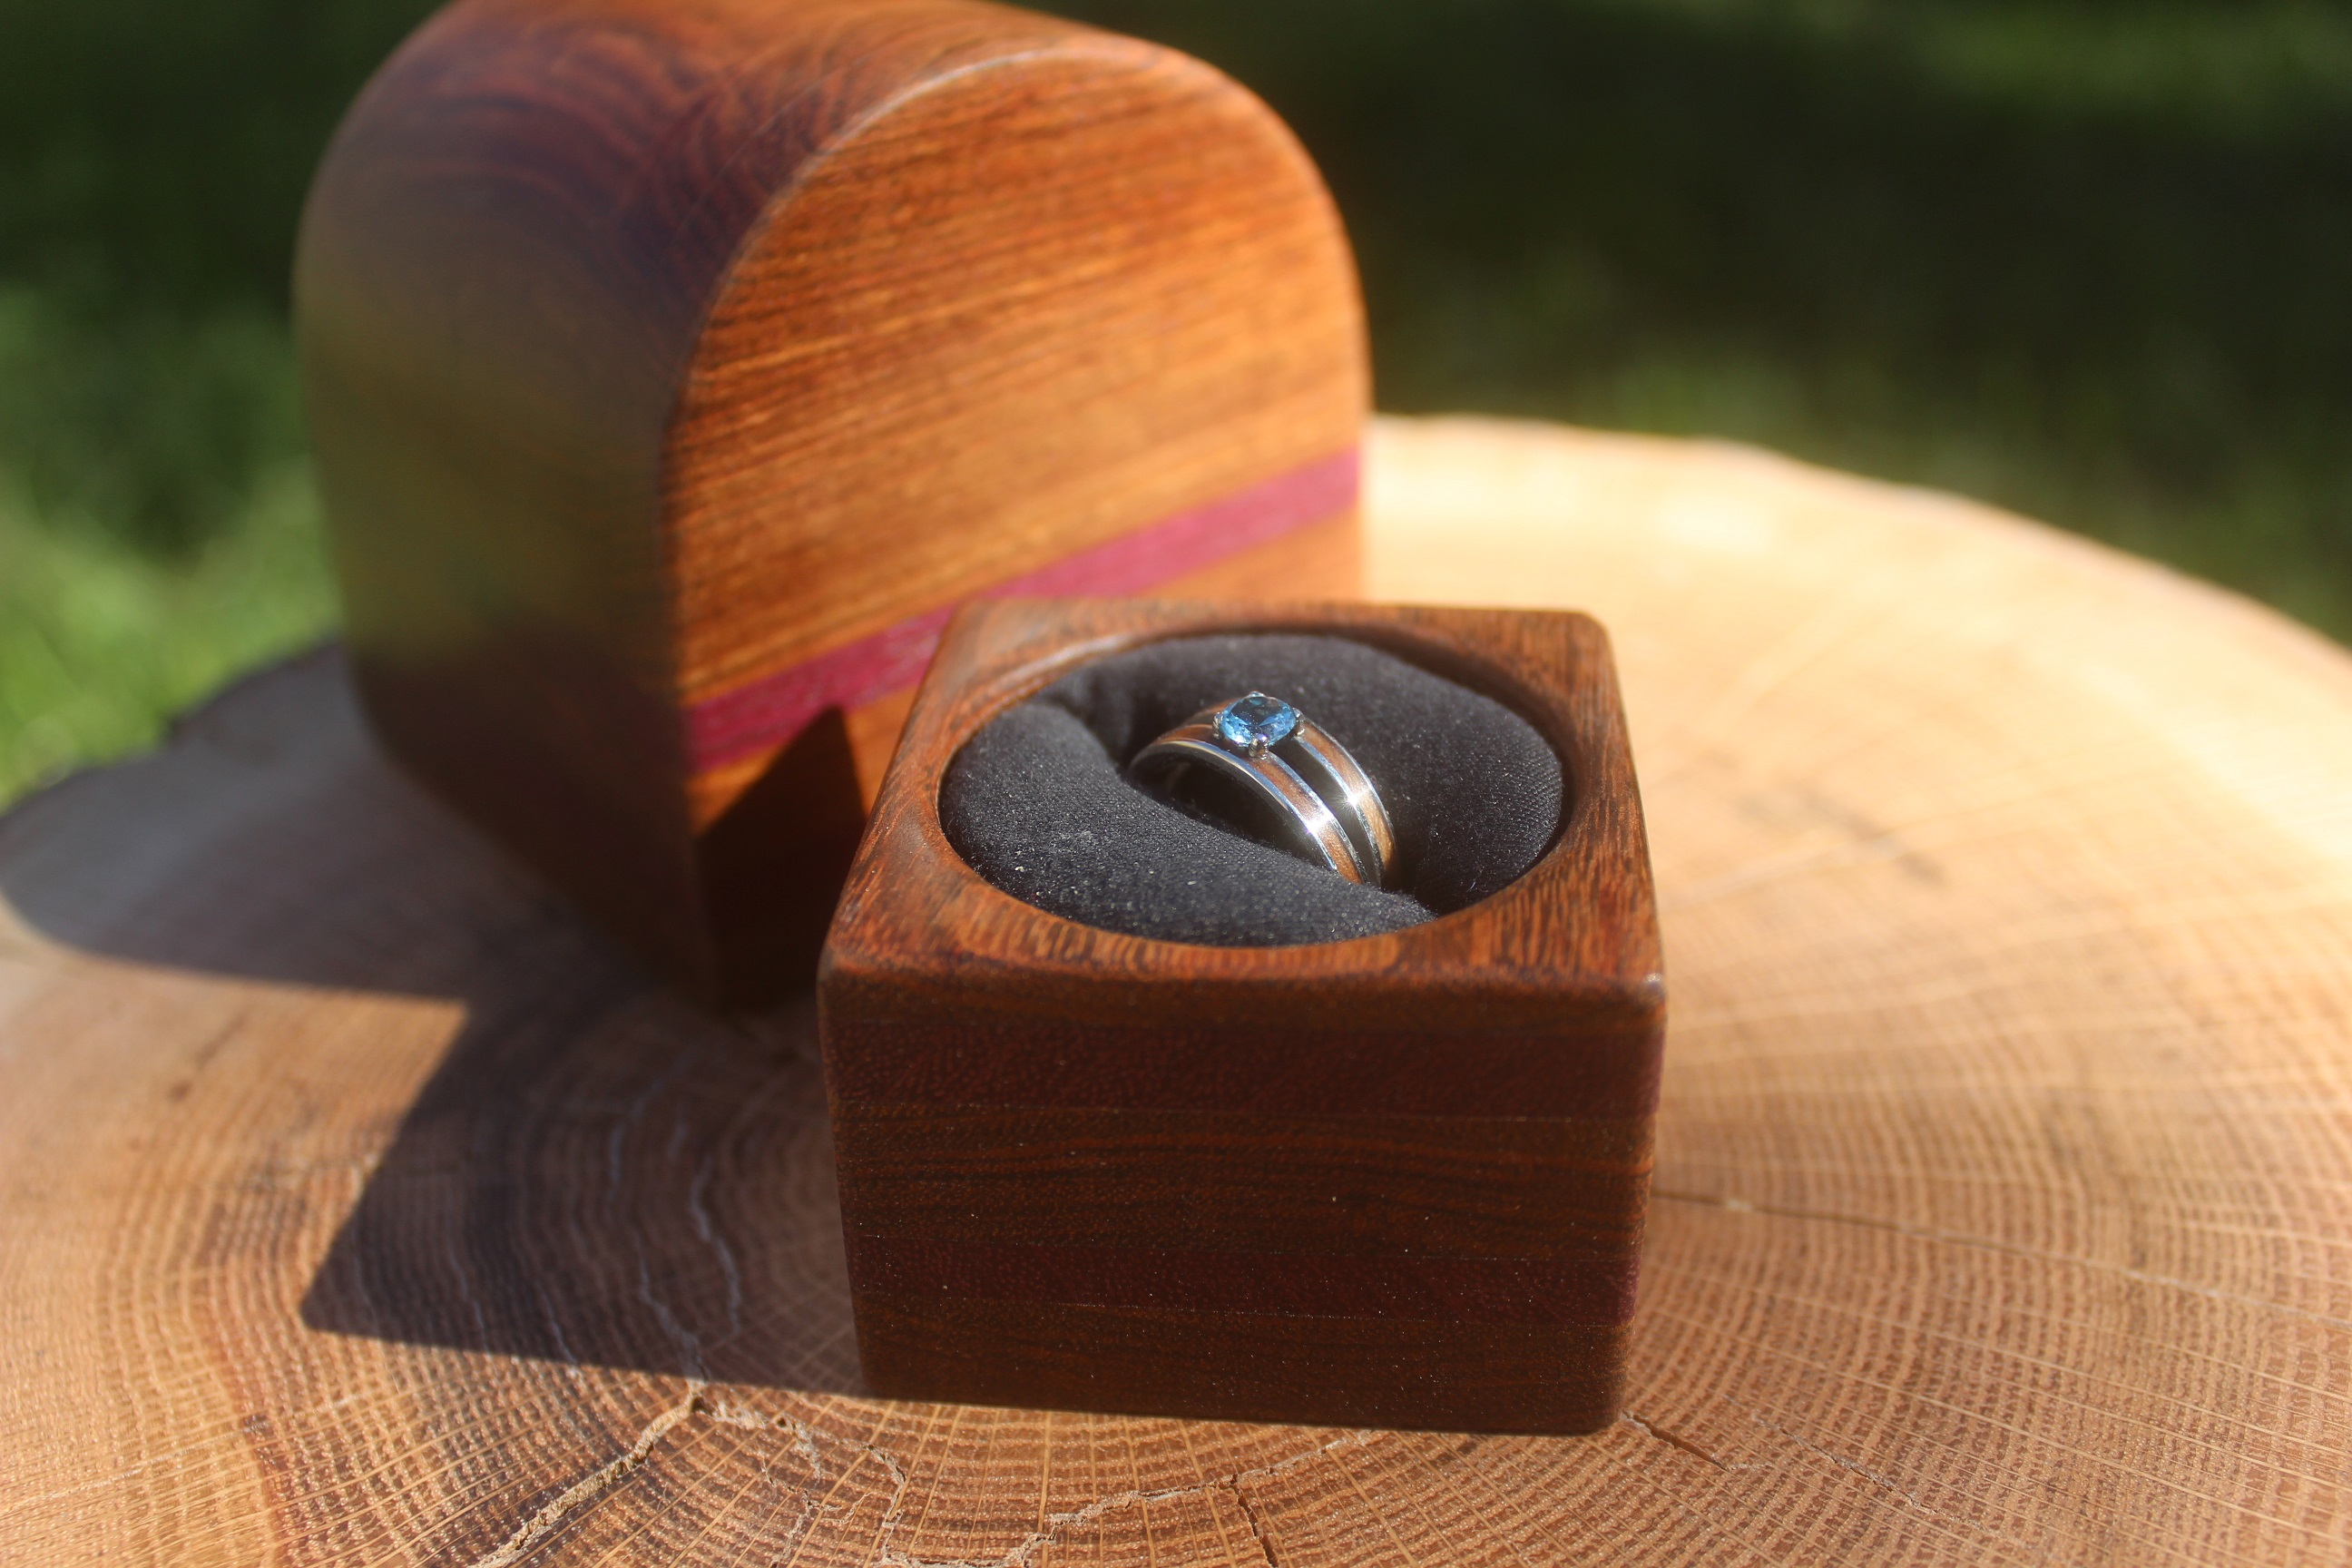 1 jackman works jackman works jackman carpentry woodworking wood diy do it yourself building making design upcycled upcycling recycled reclaimed ring box engagement ring solutioingenieria Gallery